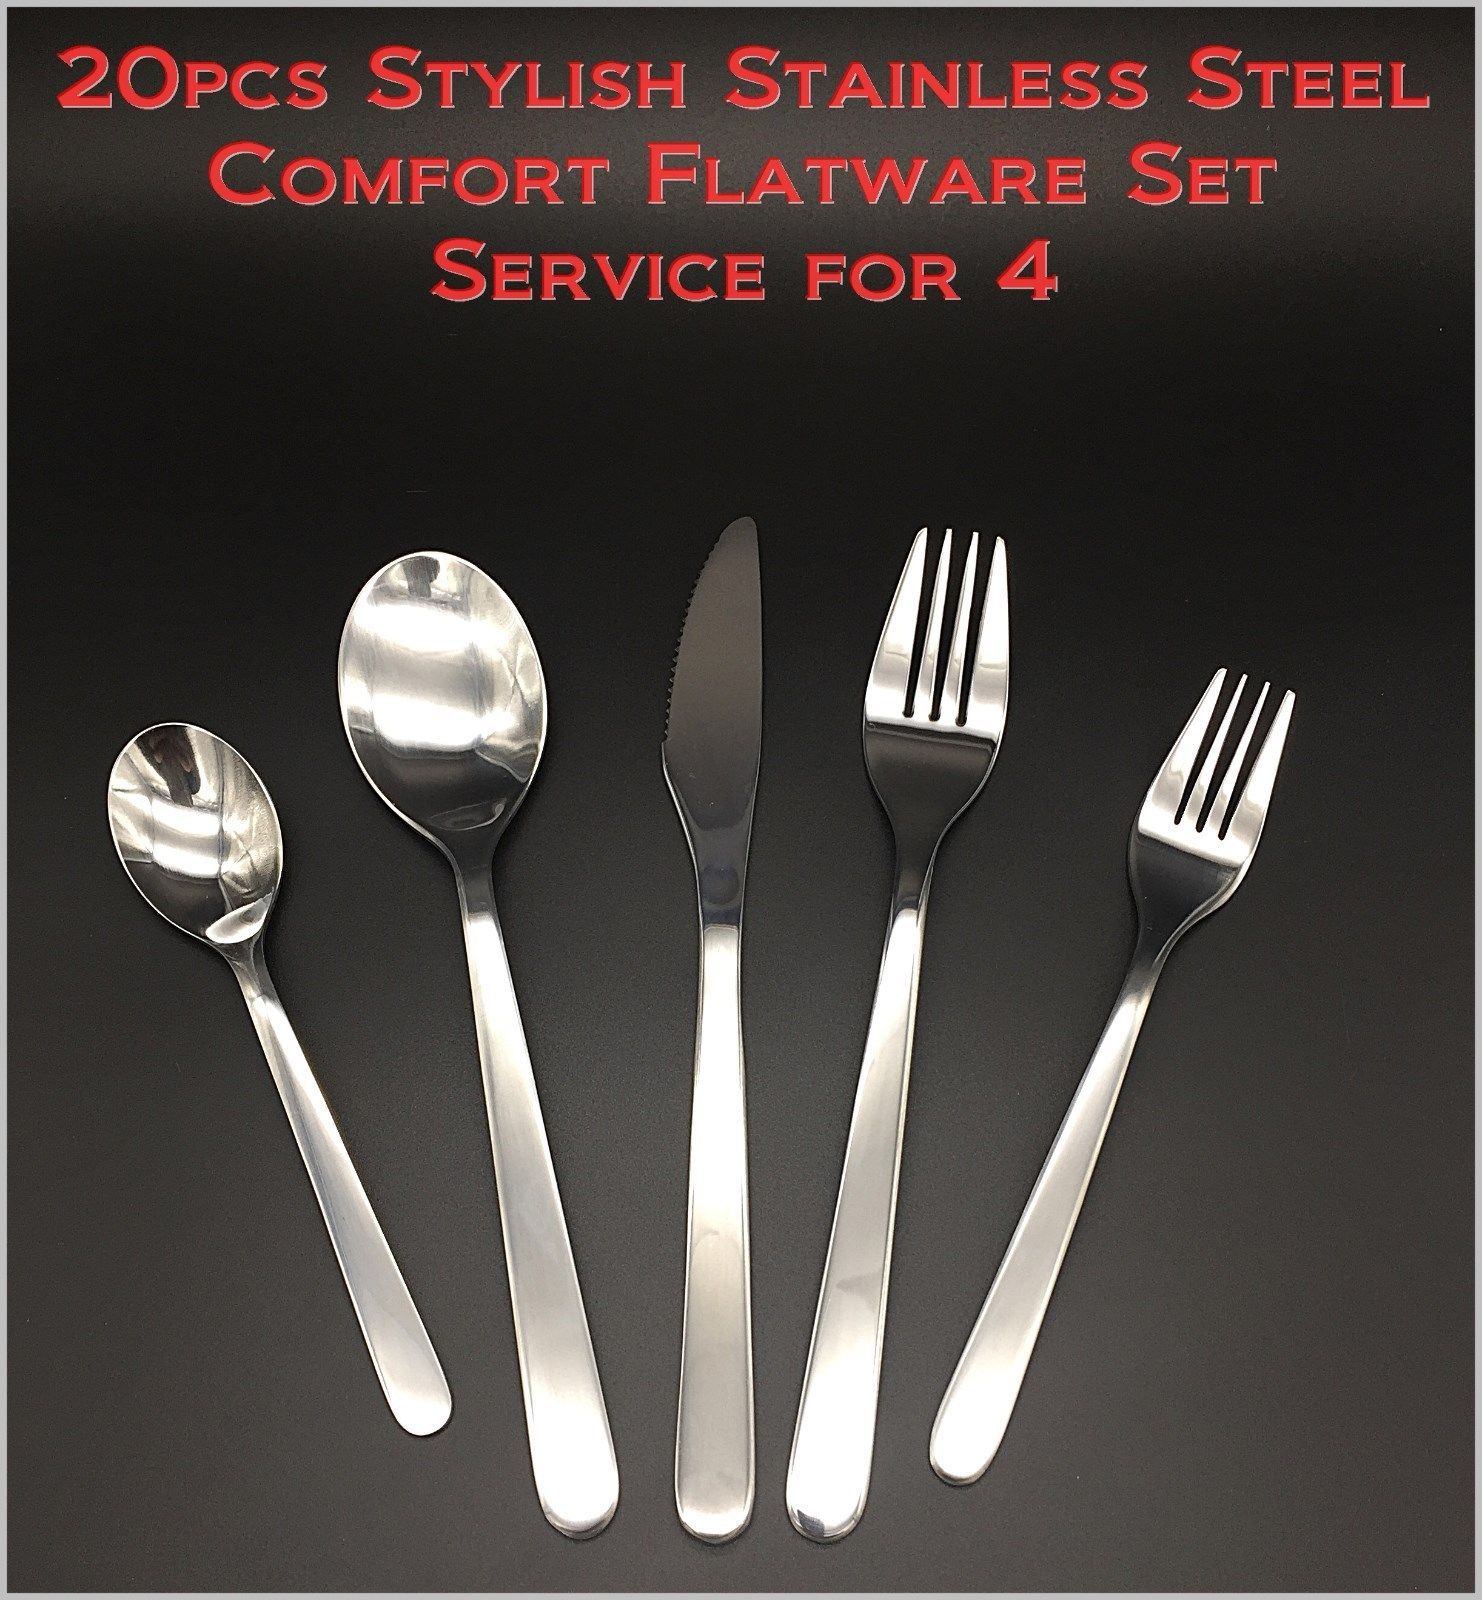 20pcs New Modern, Stylish & Classic Stainless Steel Comfort Flatware Set for 4 - $29.79